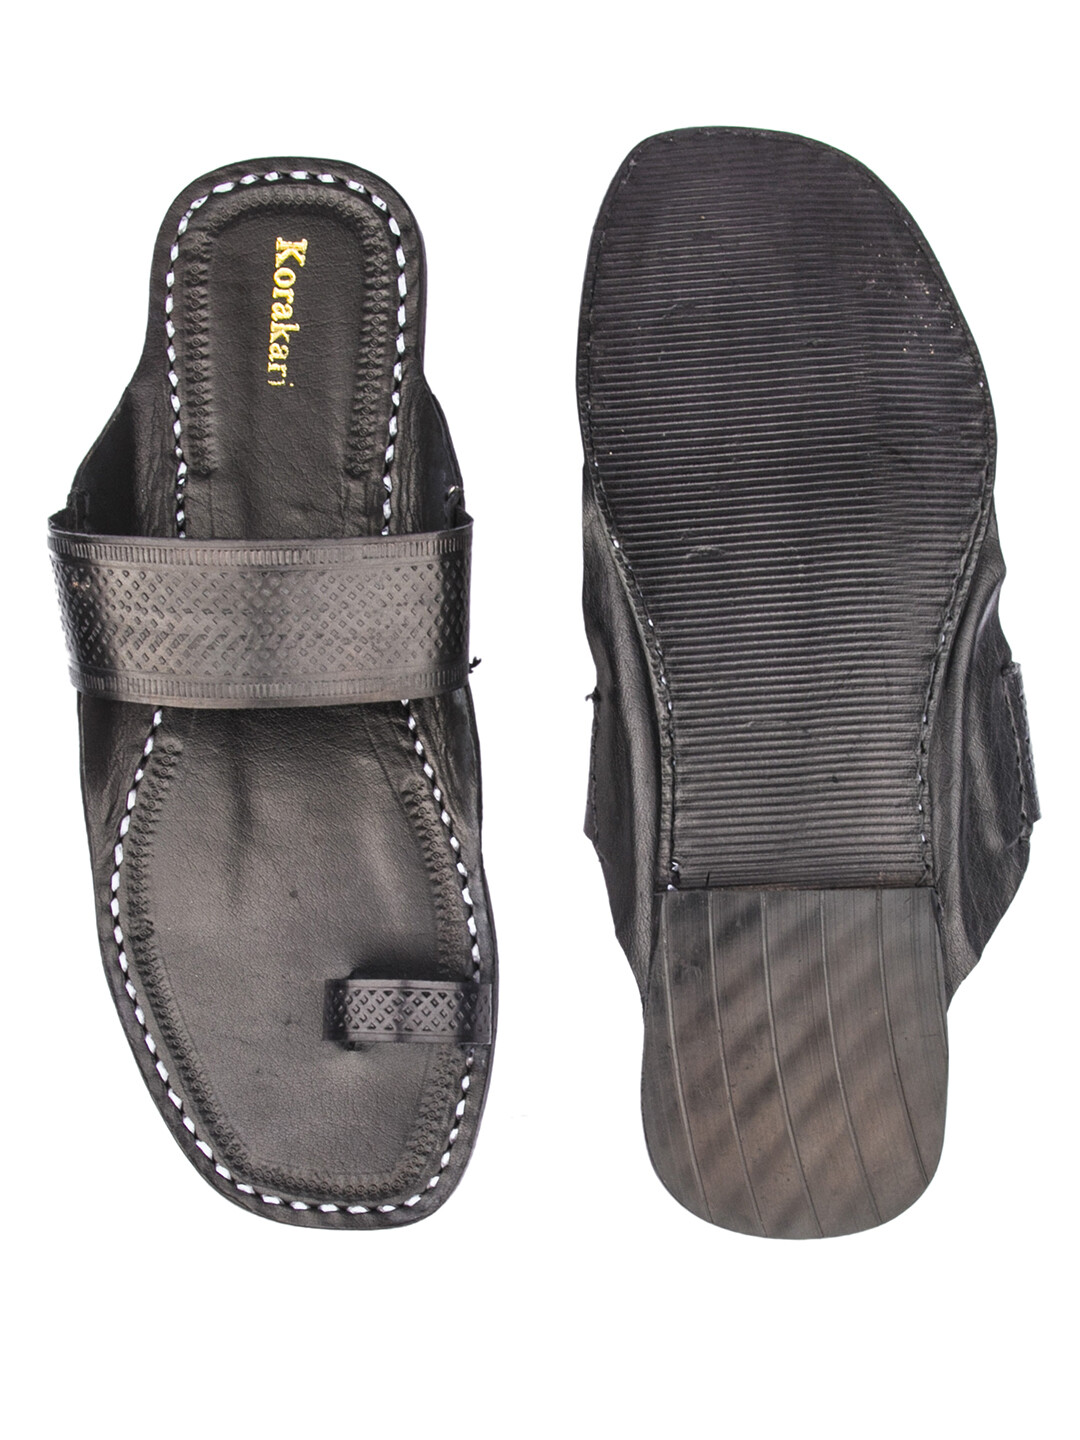 KORAKARI Black Toe Style Pure Leather Kolhapuri Chappal for Men